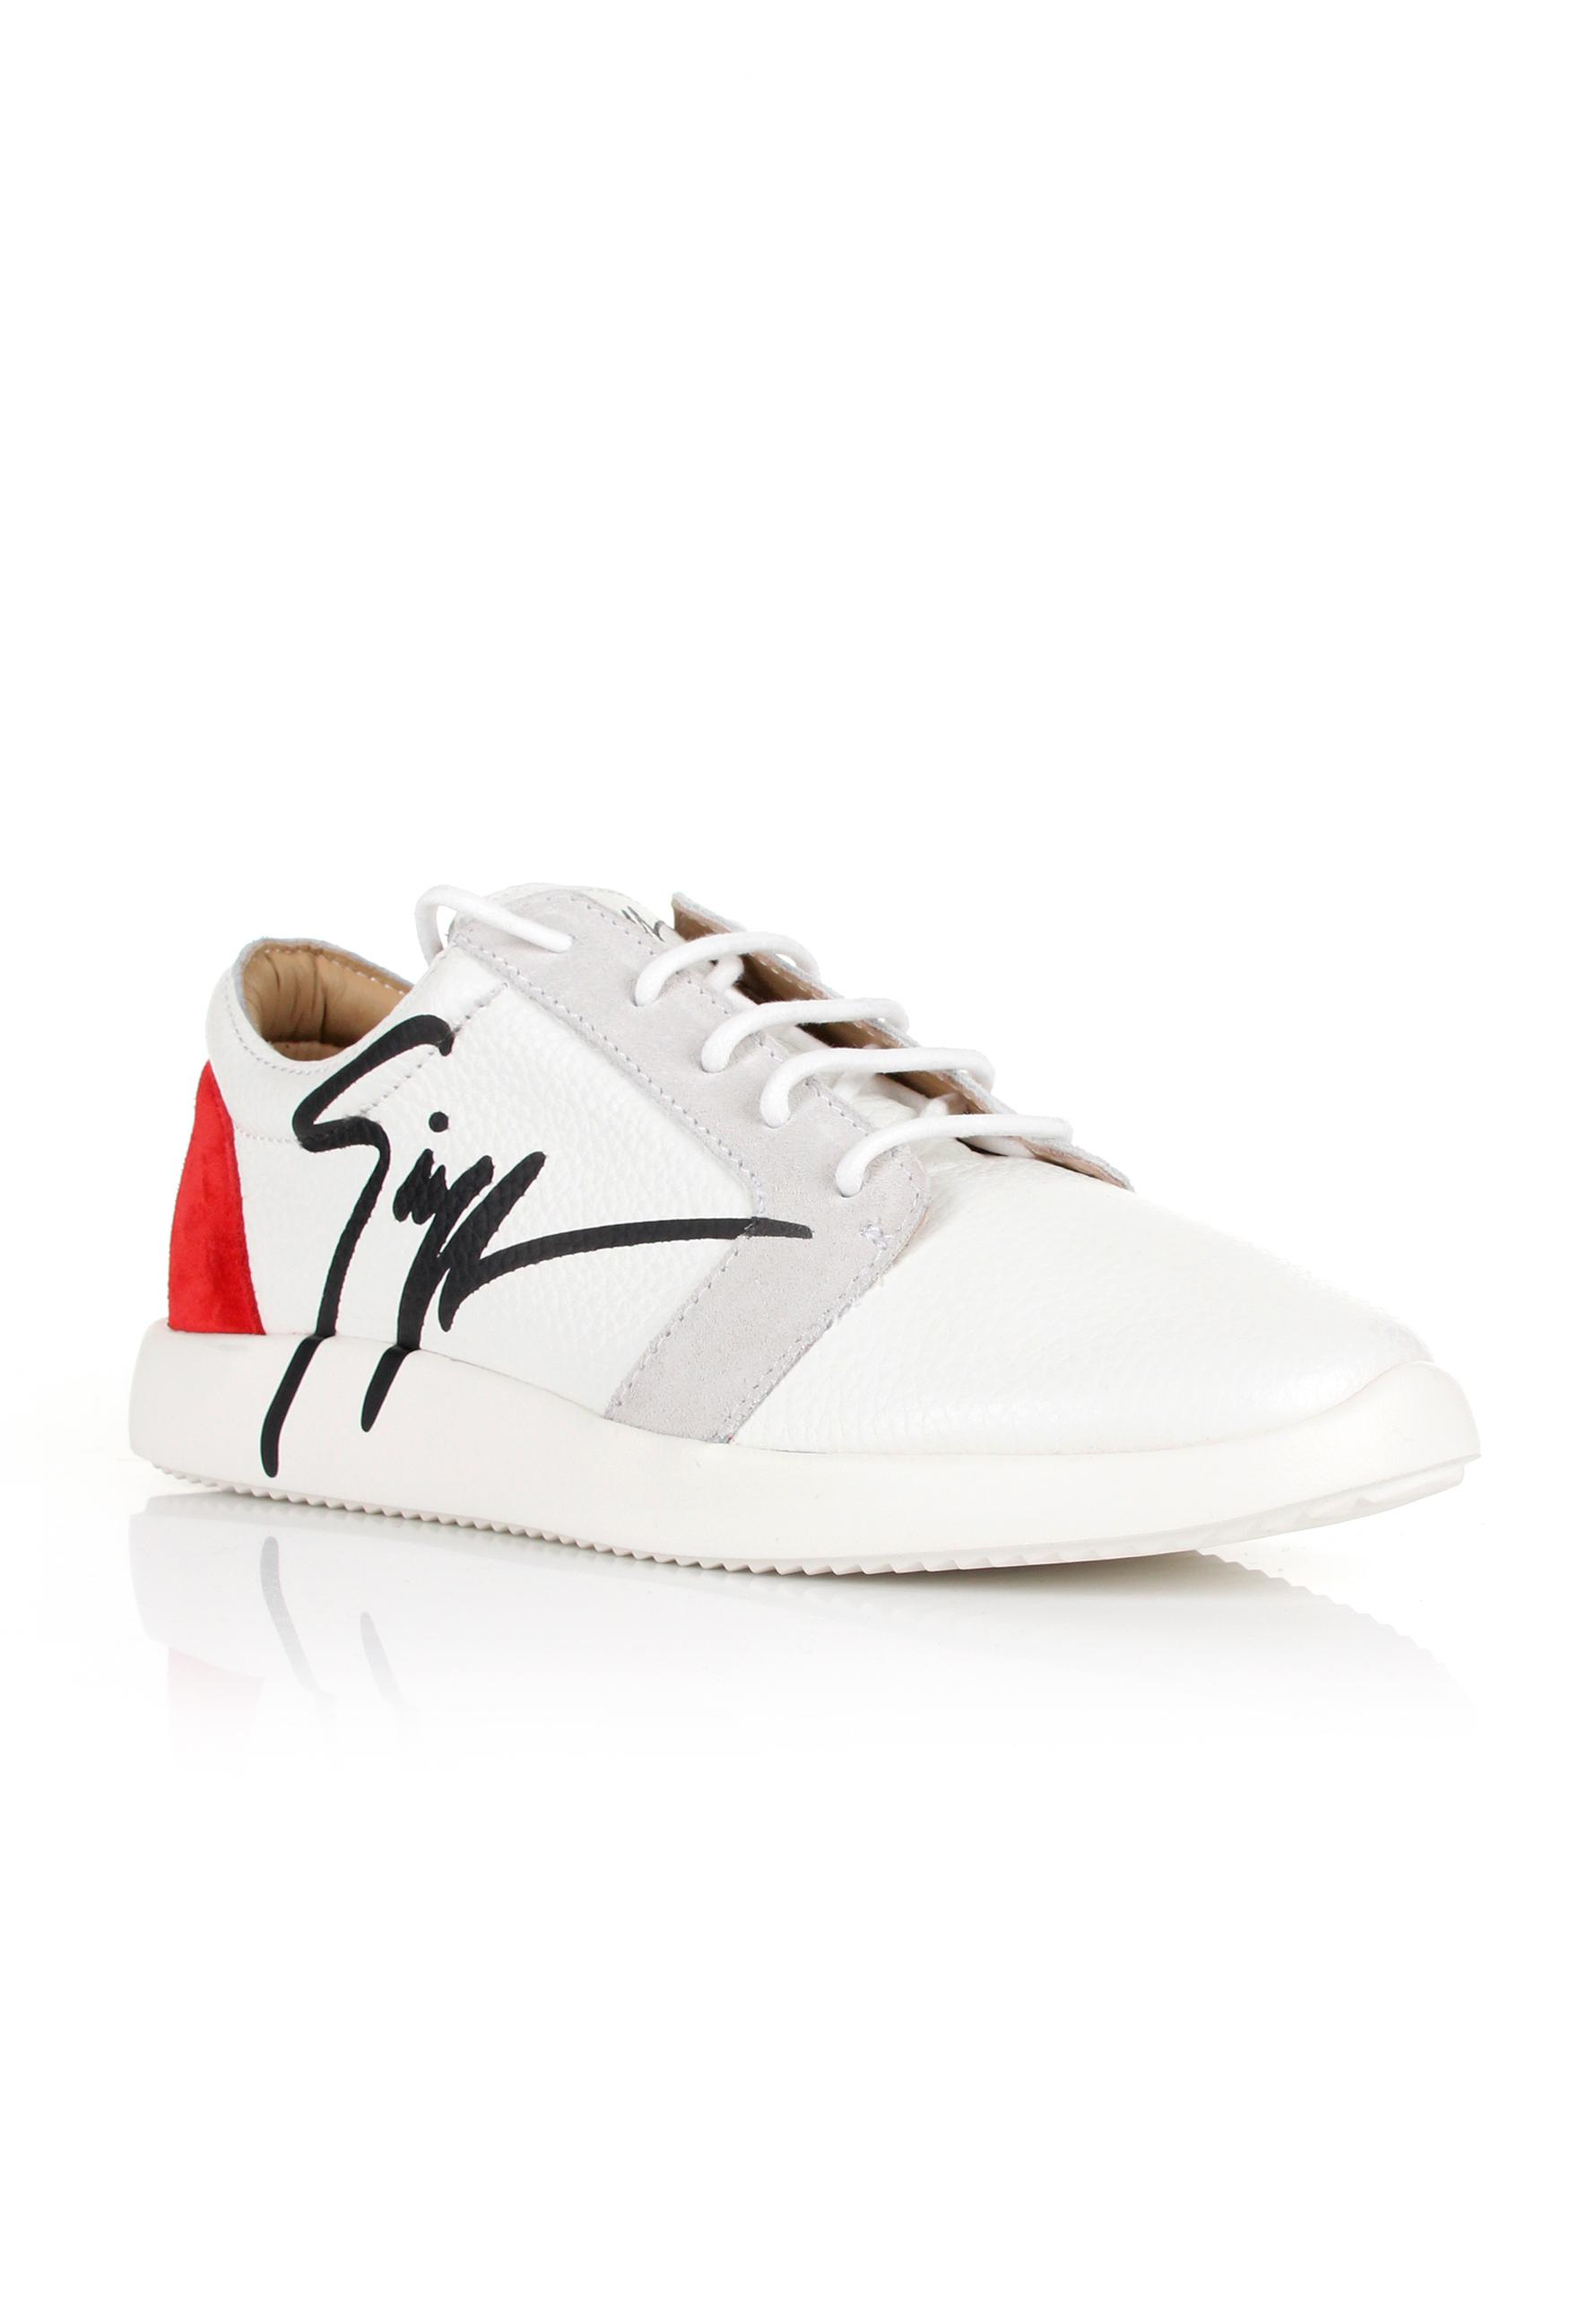 ae818f0e3c91 Lyst - Giuseppe Zanotti G Runner Low-top Sneakers White red in White ...